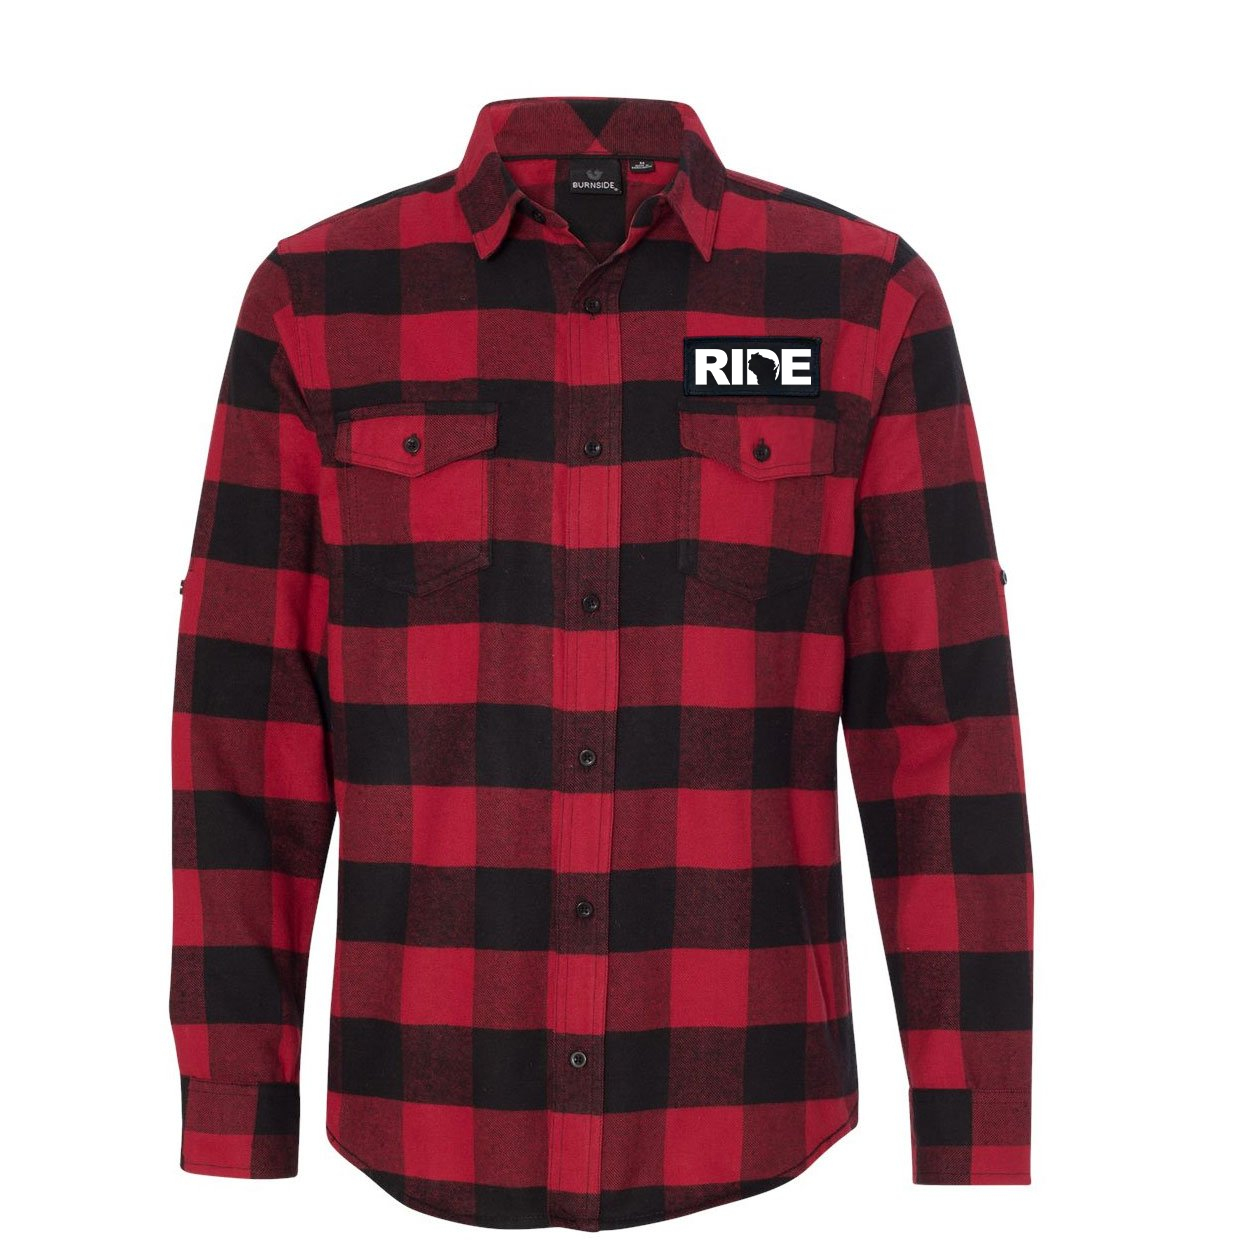 Ride Wisconsin Classic Unisex Long Sleeve Woven Patch Flannel Shirt Red/Black Buffalo (White Logo)